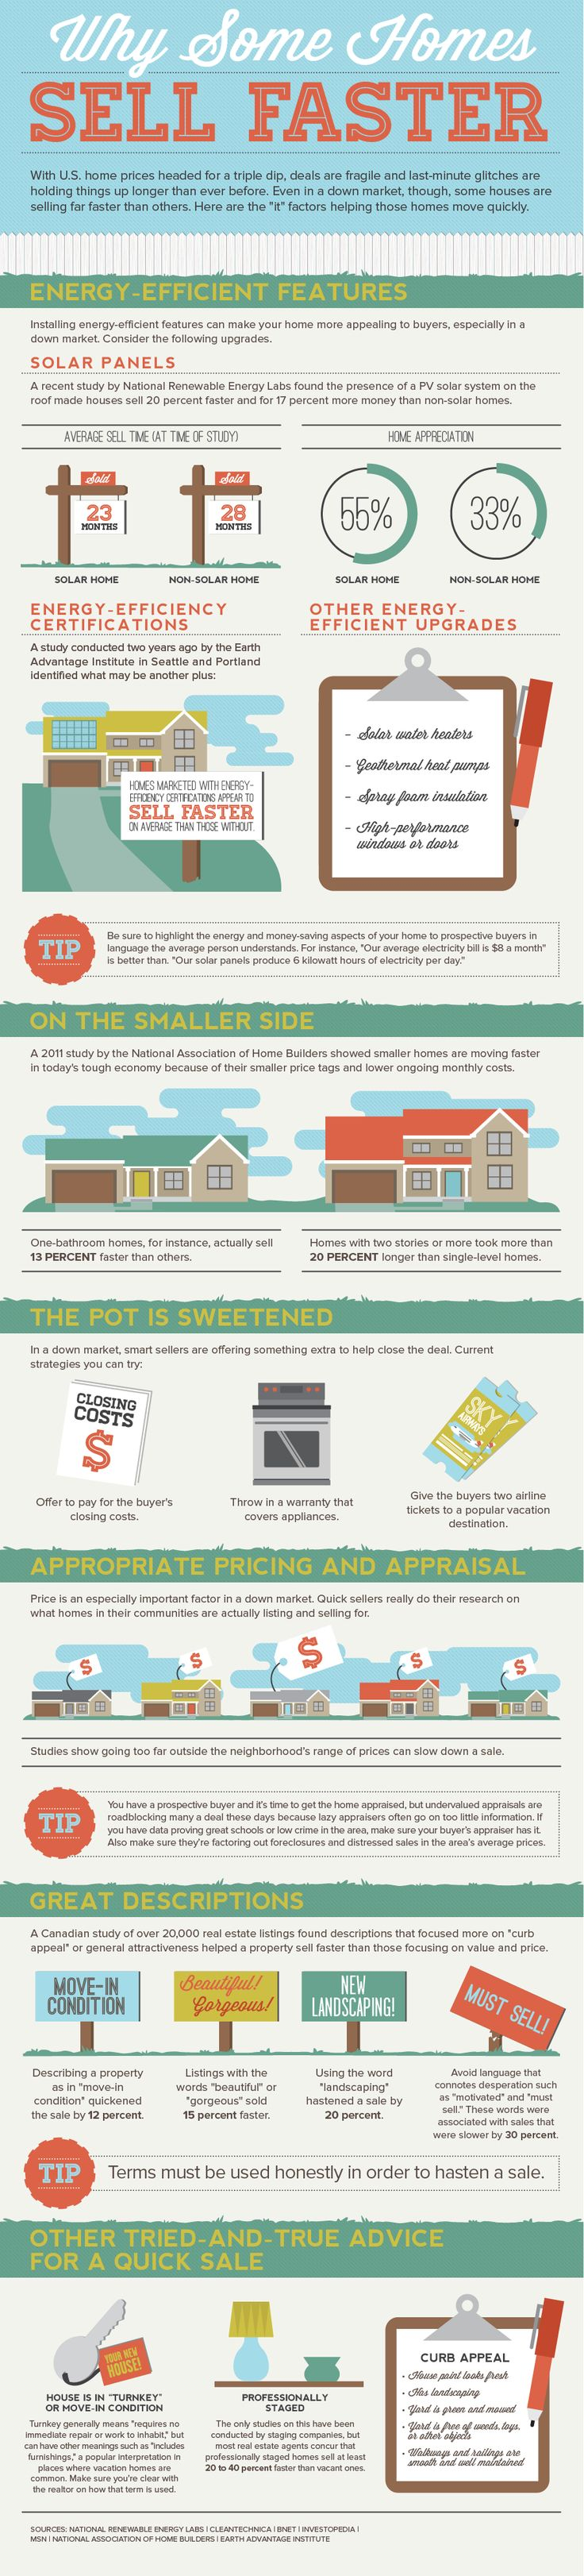 This infographic provides tips on how to sell a home faster. It lists some of the things you can do if you're trying to sell your home the things you